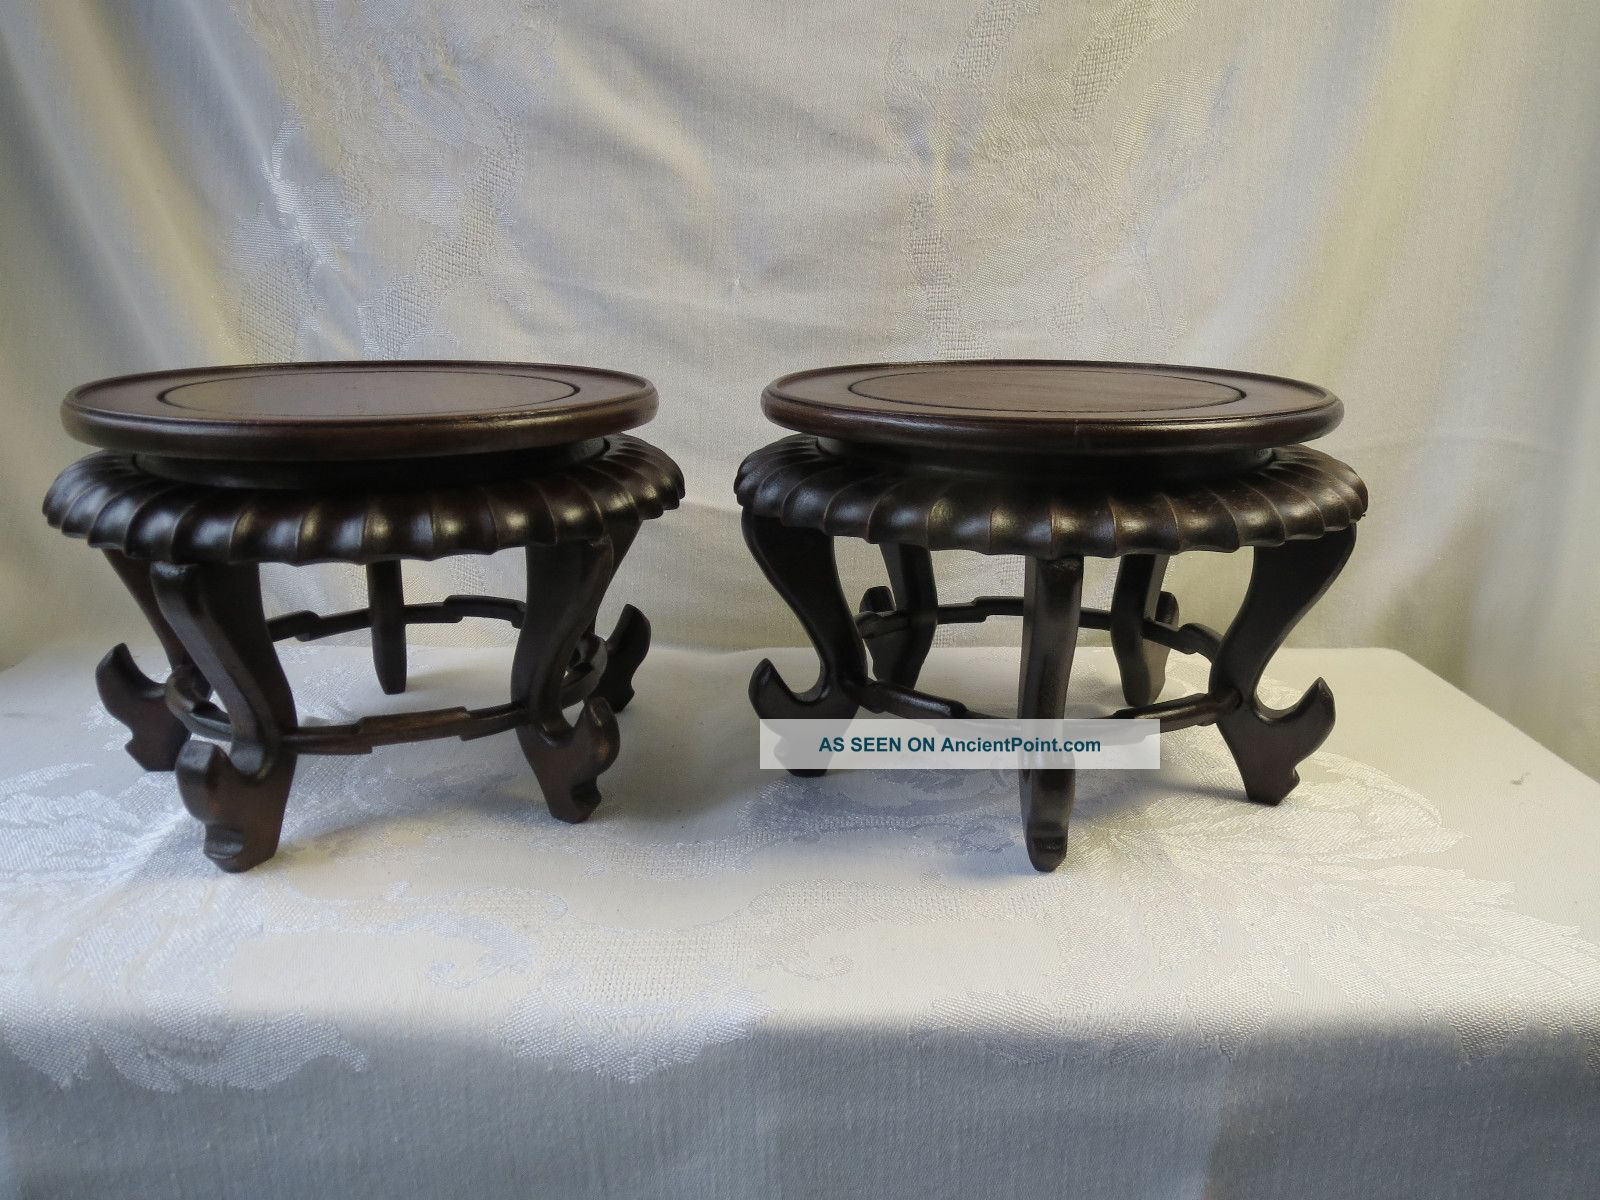 Antique chinese carved two pair wood stand display plate bowl antique chinese carved two pair wood stand display plate bowl vase statue floridaeventfo Images